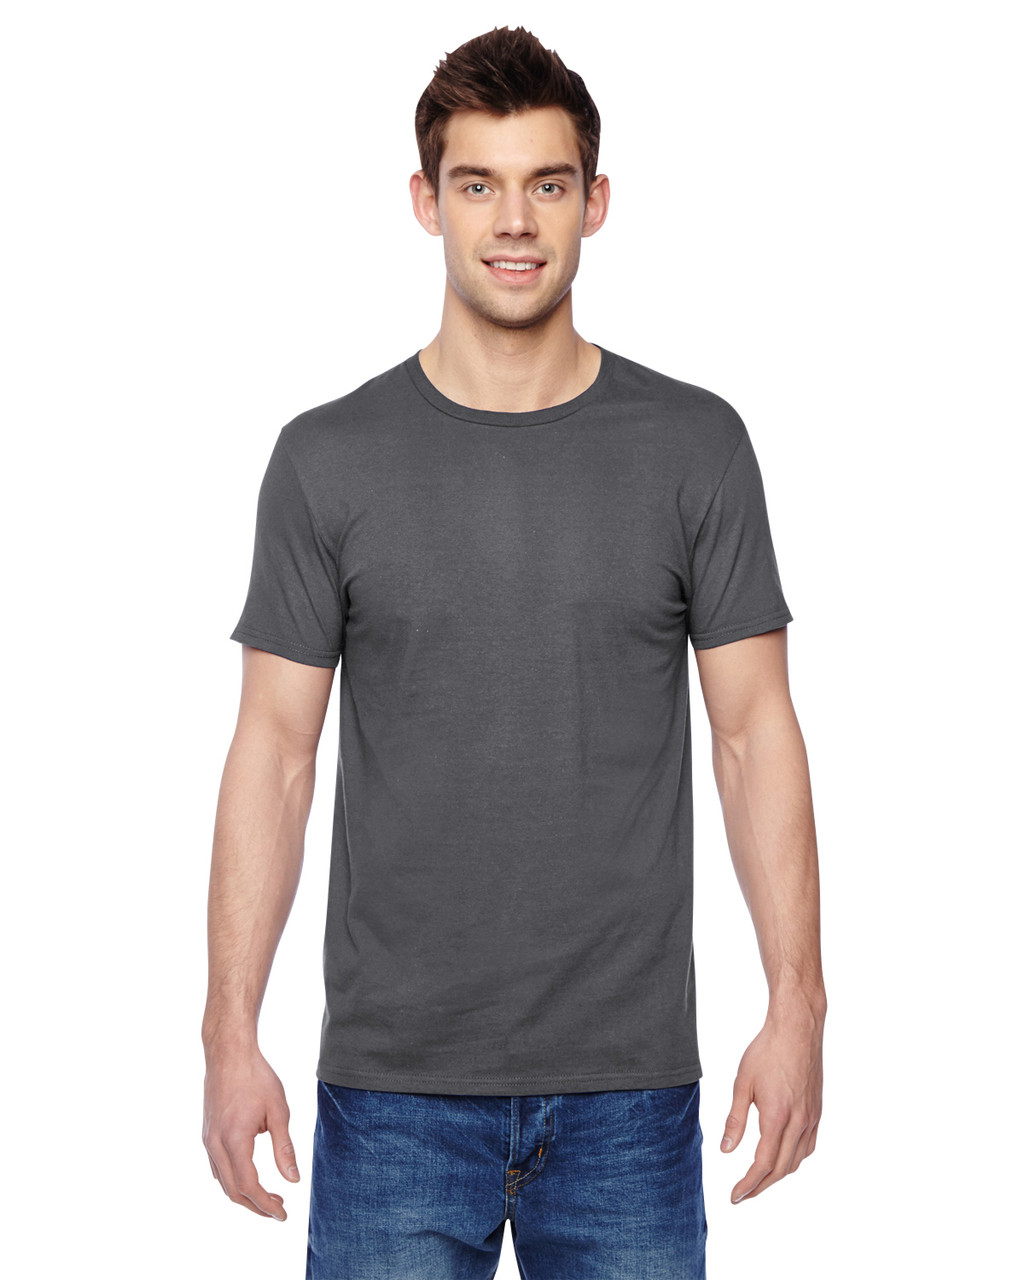 Charcoal Grey - SF45R Fruit of the Loom Softspun Cotton T-Shirt | Blankclothing.ca